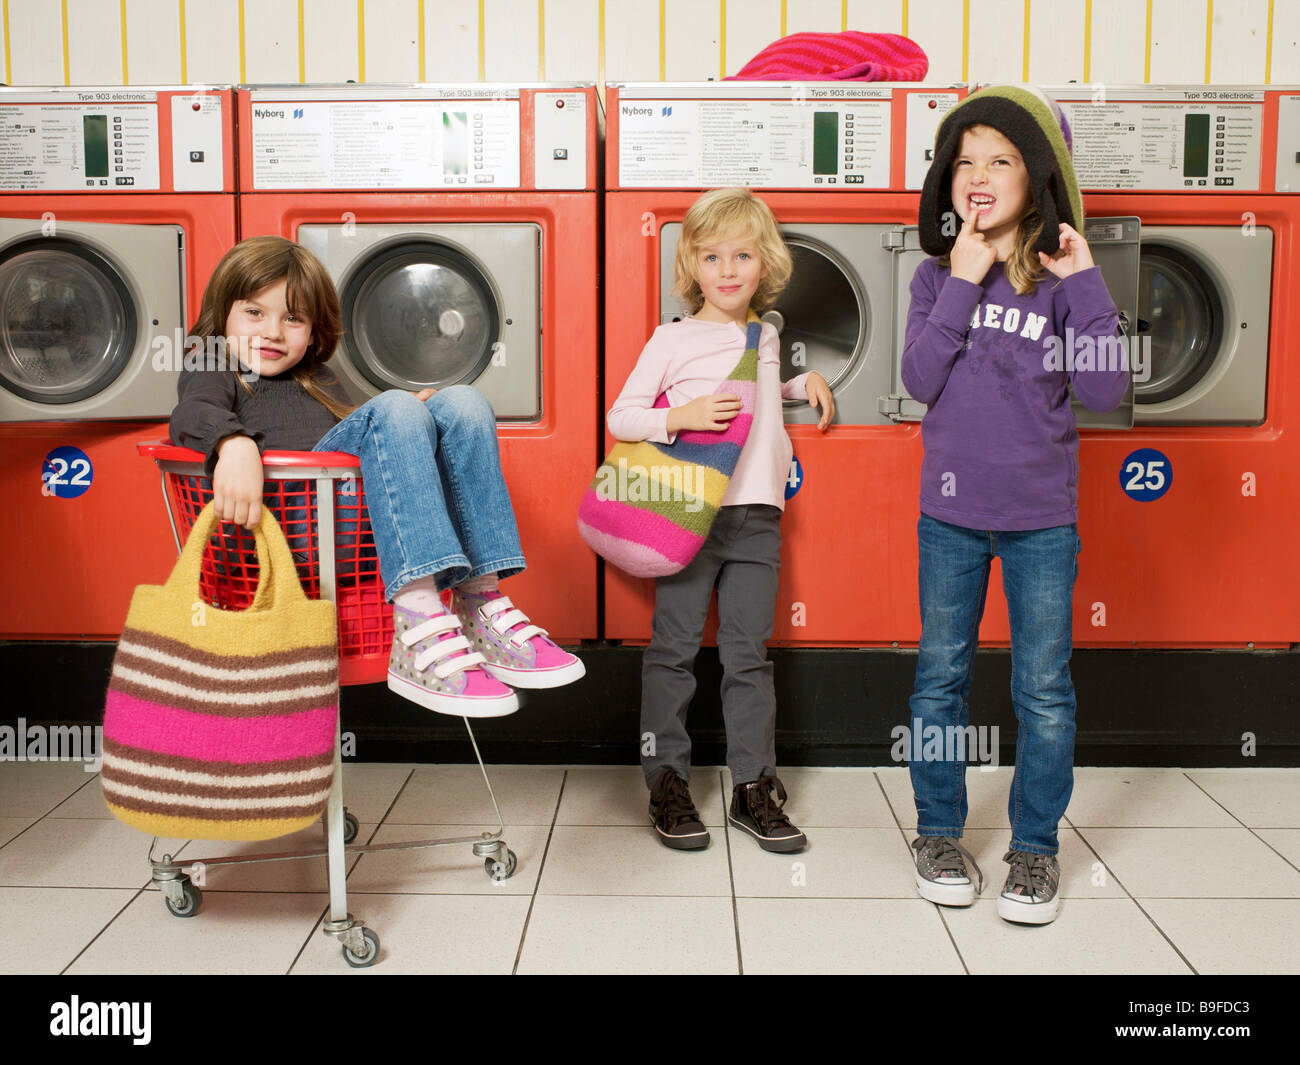 Three children in front of washing machines - Stock Image